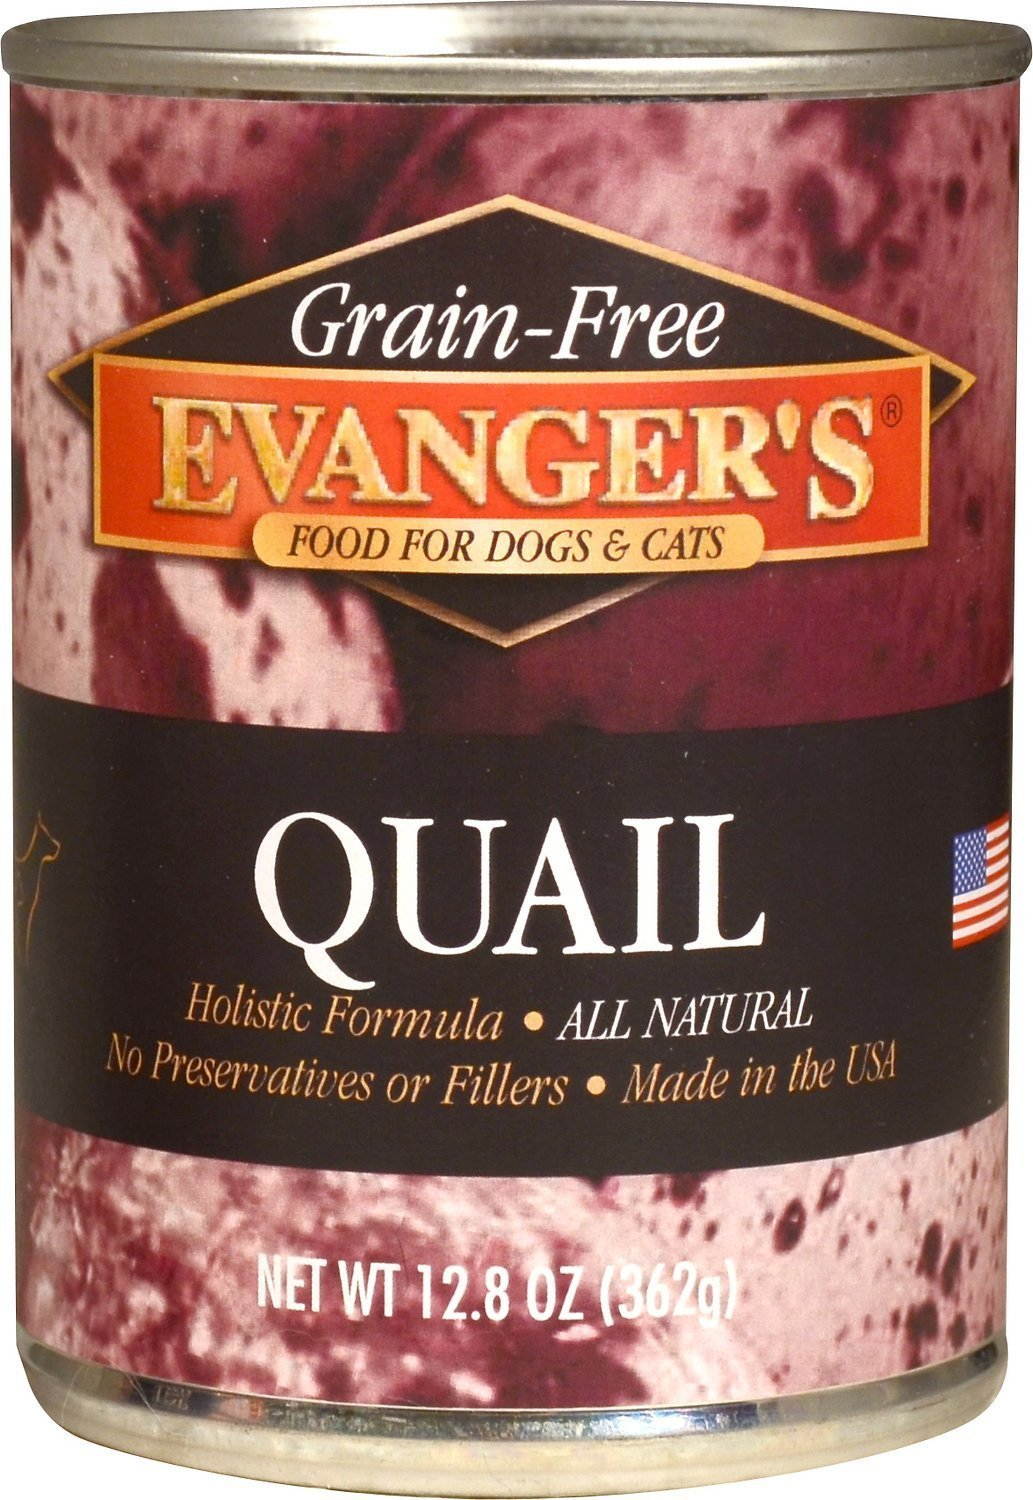 Evangers Grain-Free Quail Canned Dog Cat Food